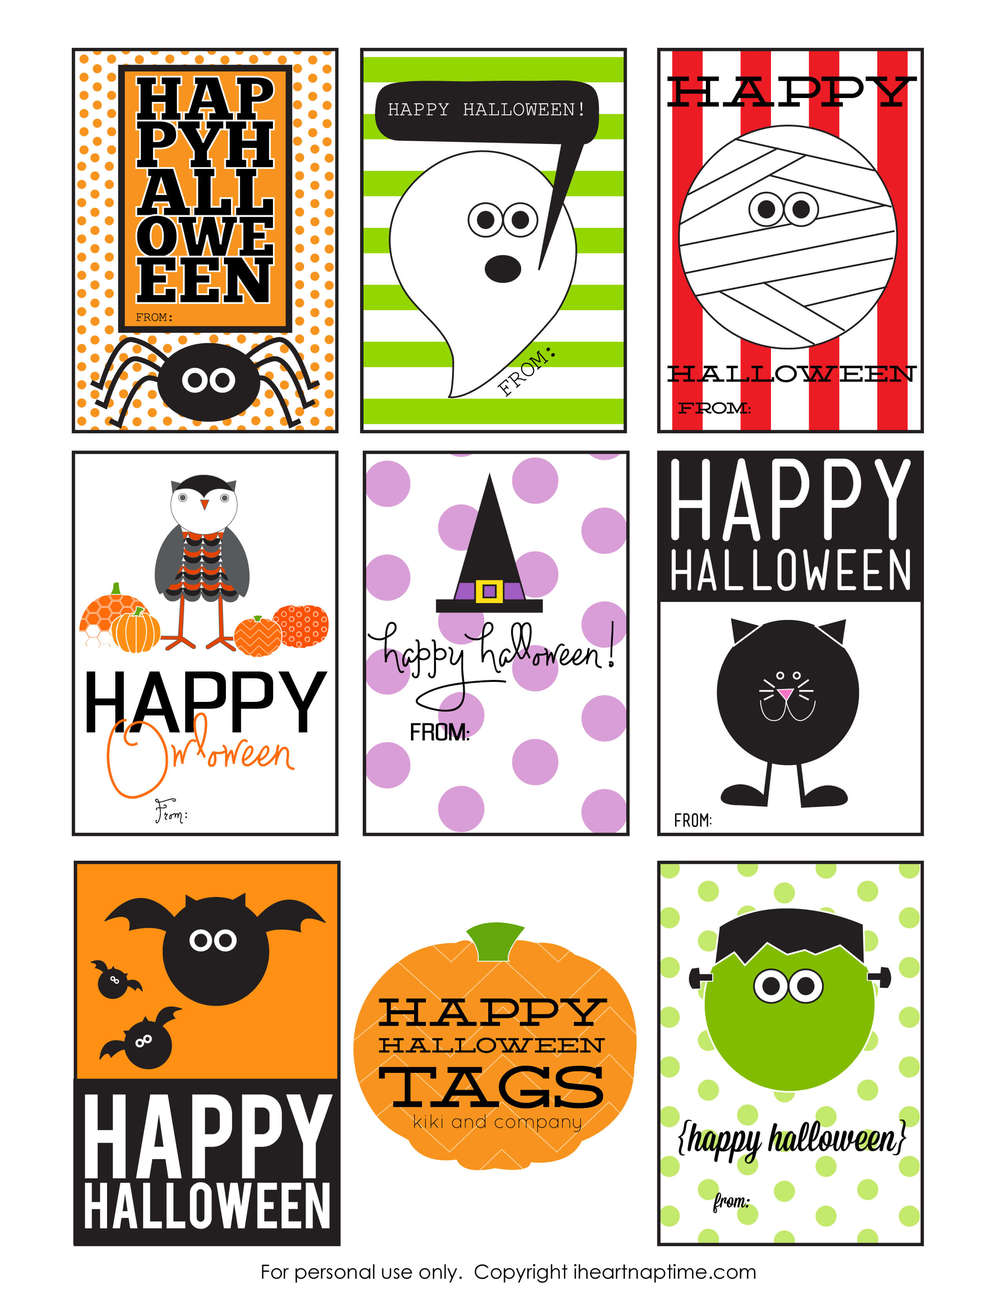 download your free tags here - Download Halloween Pictures Free